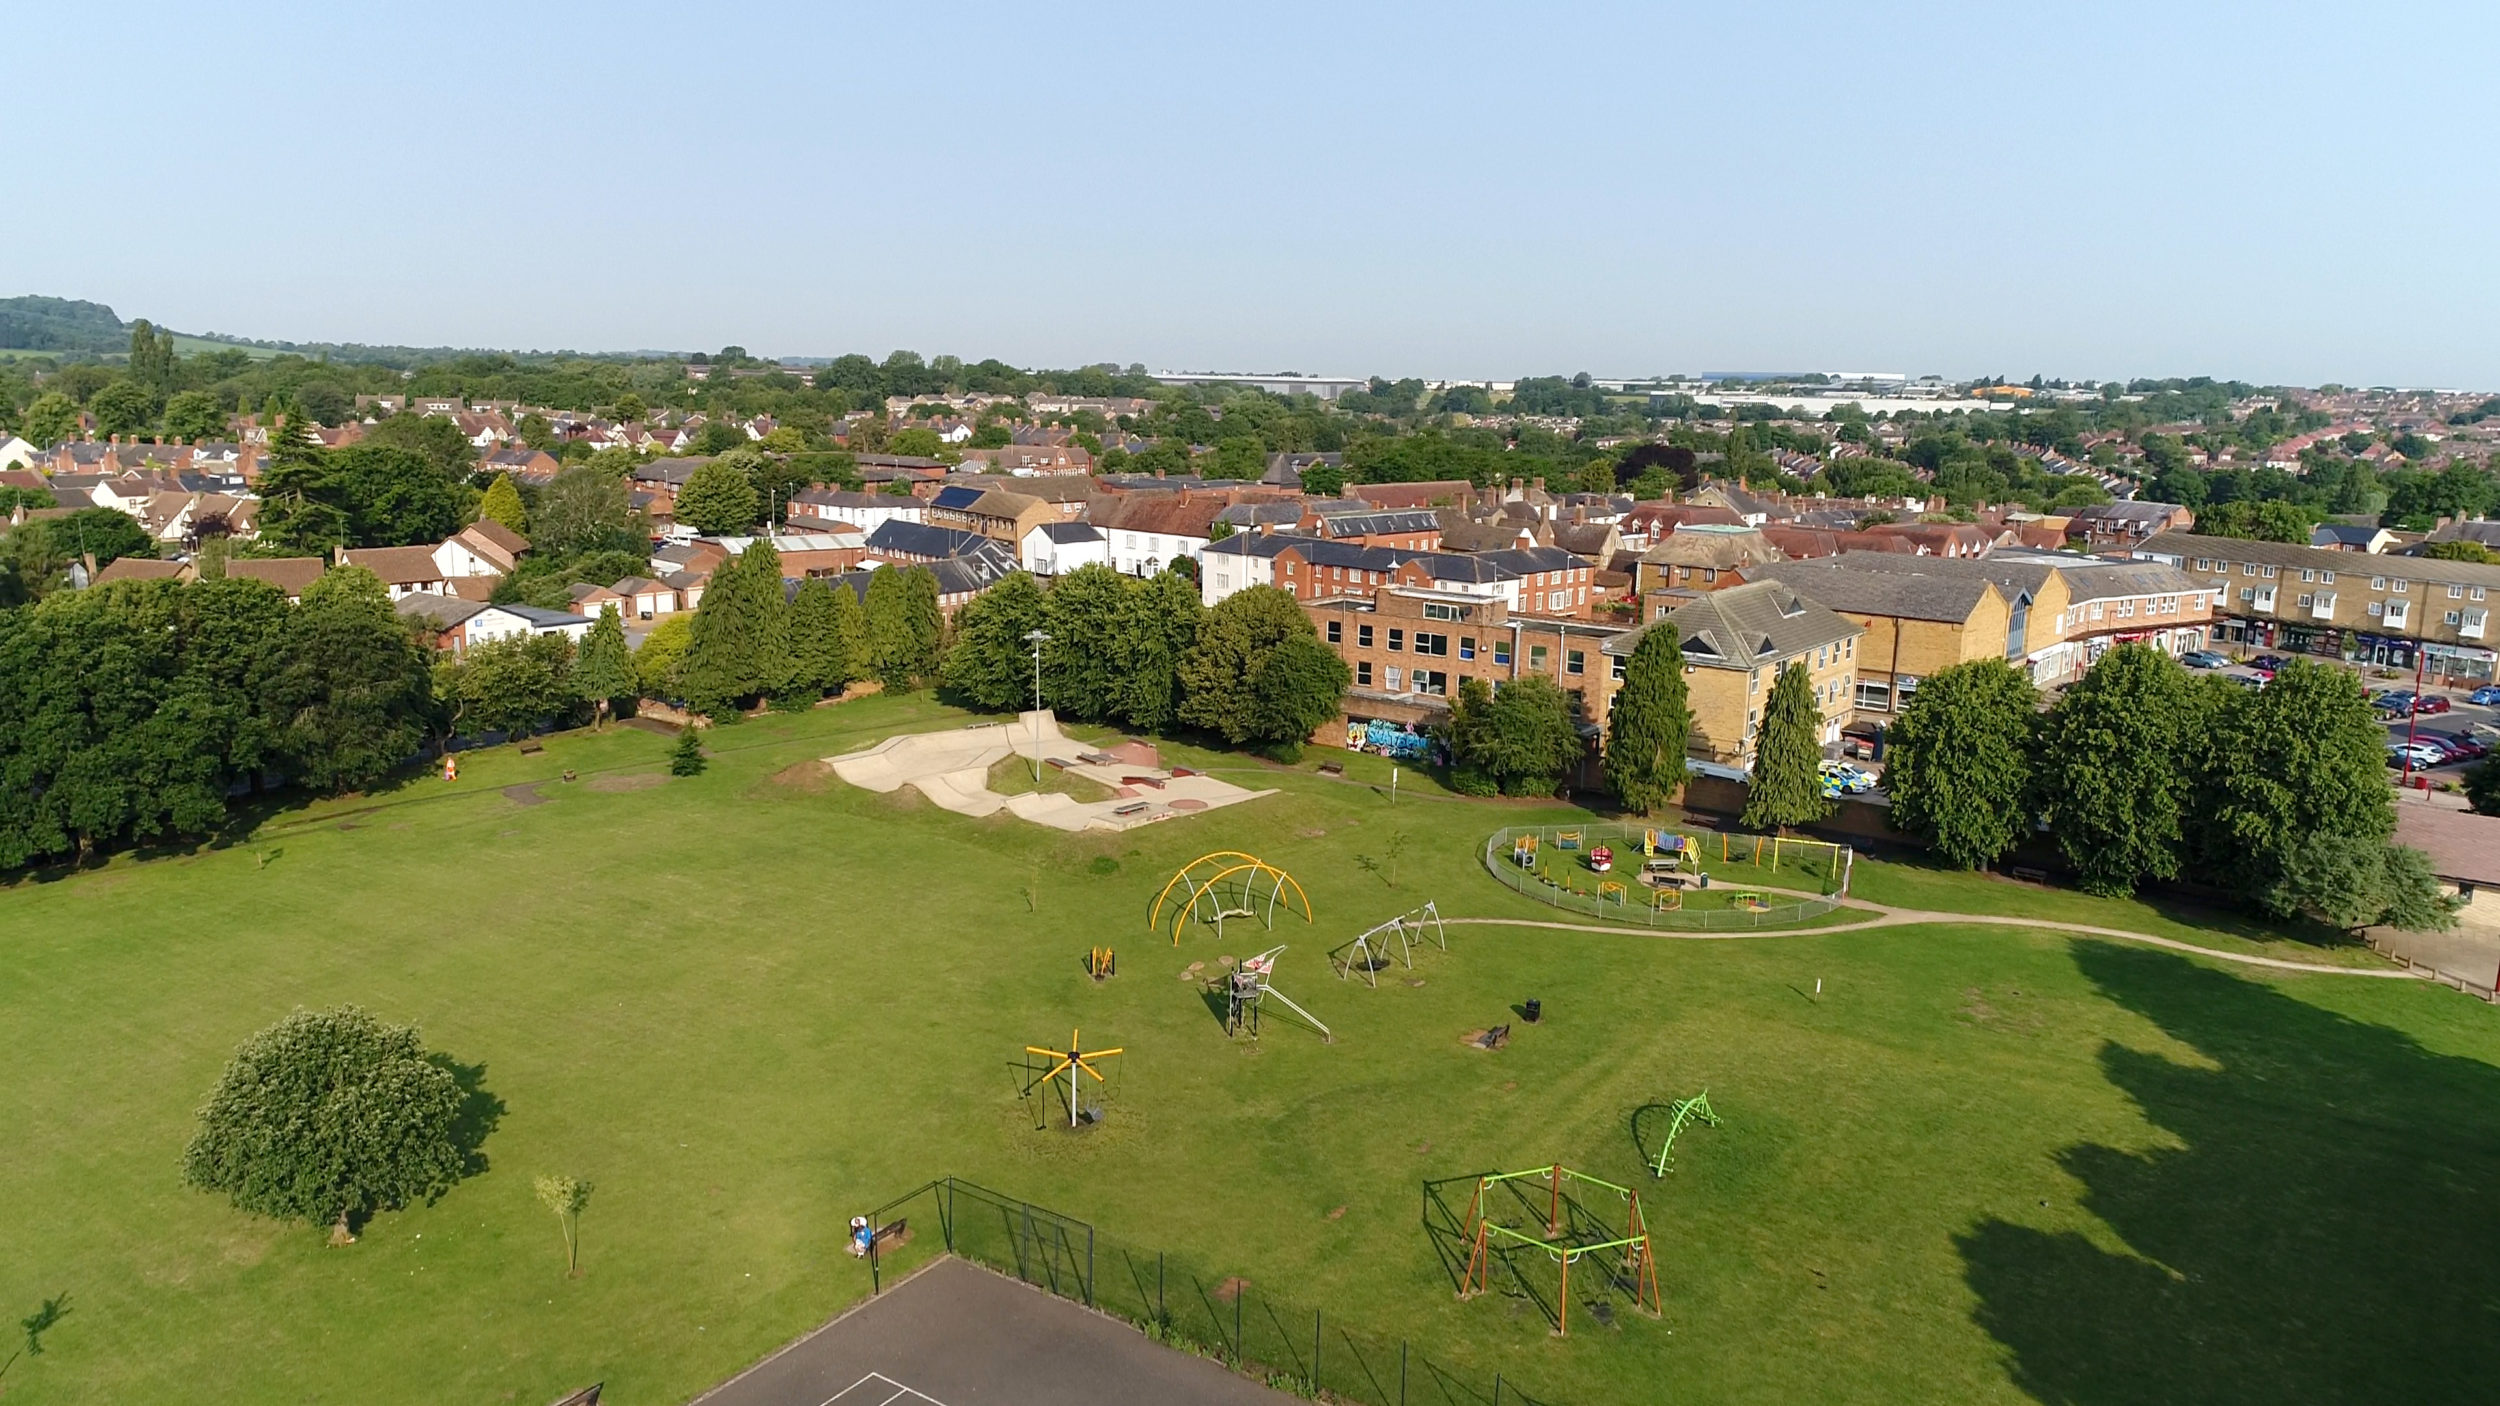 Aerial colour photograph showing a large green field with playground equipment and a skate park. The field is lined with trees, behind which are buildings and distant landscape